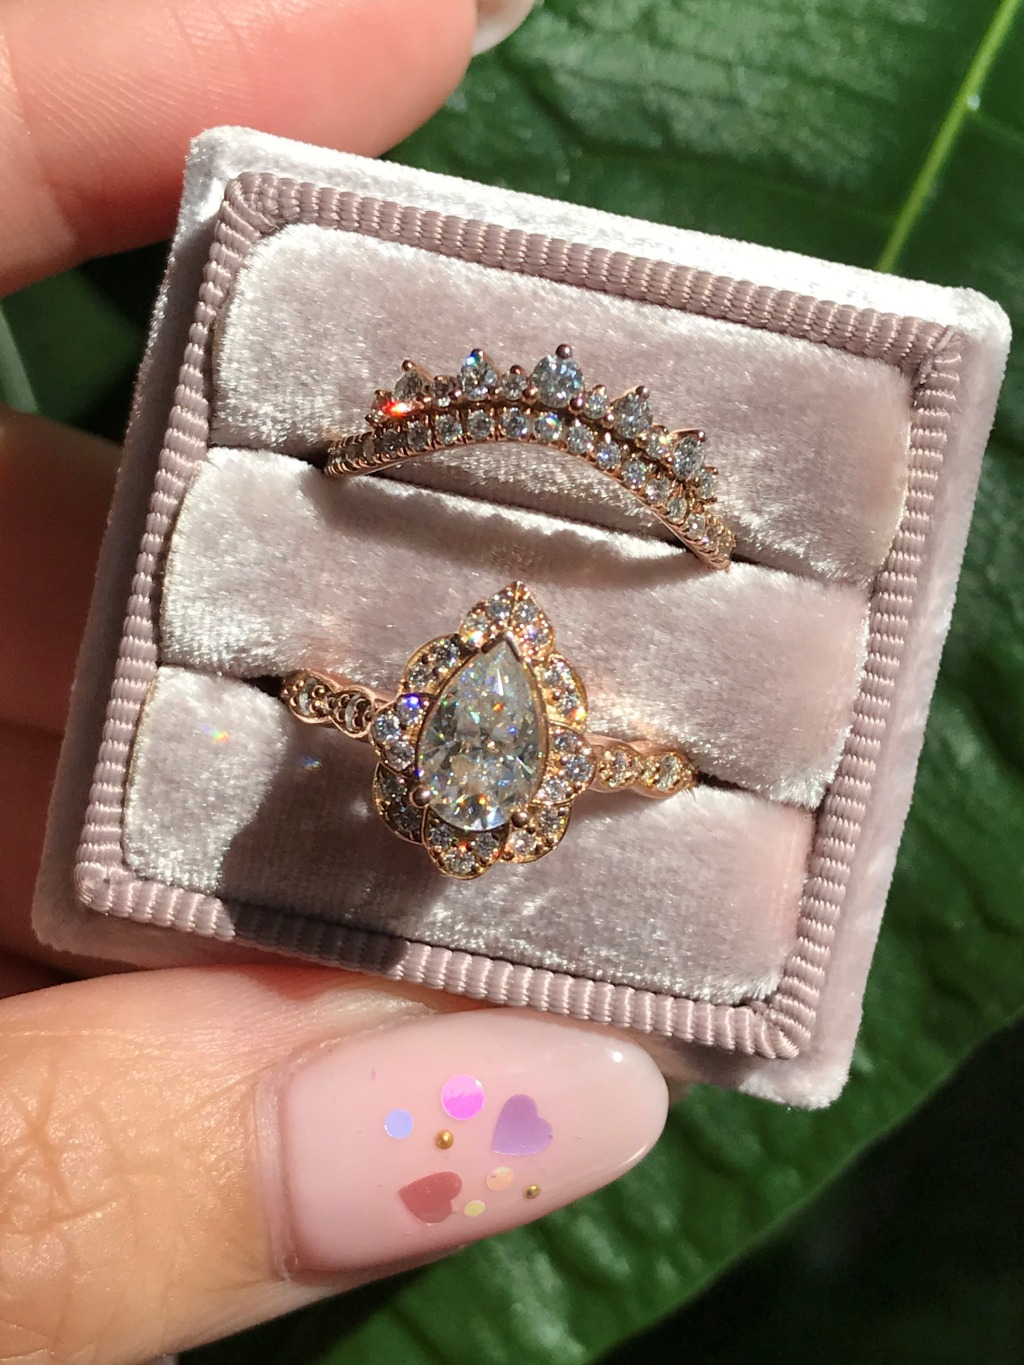 Crown diamond band + vintage floral pear ring in your favorite, rose gold 🌹 💍 Shop the look here!